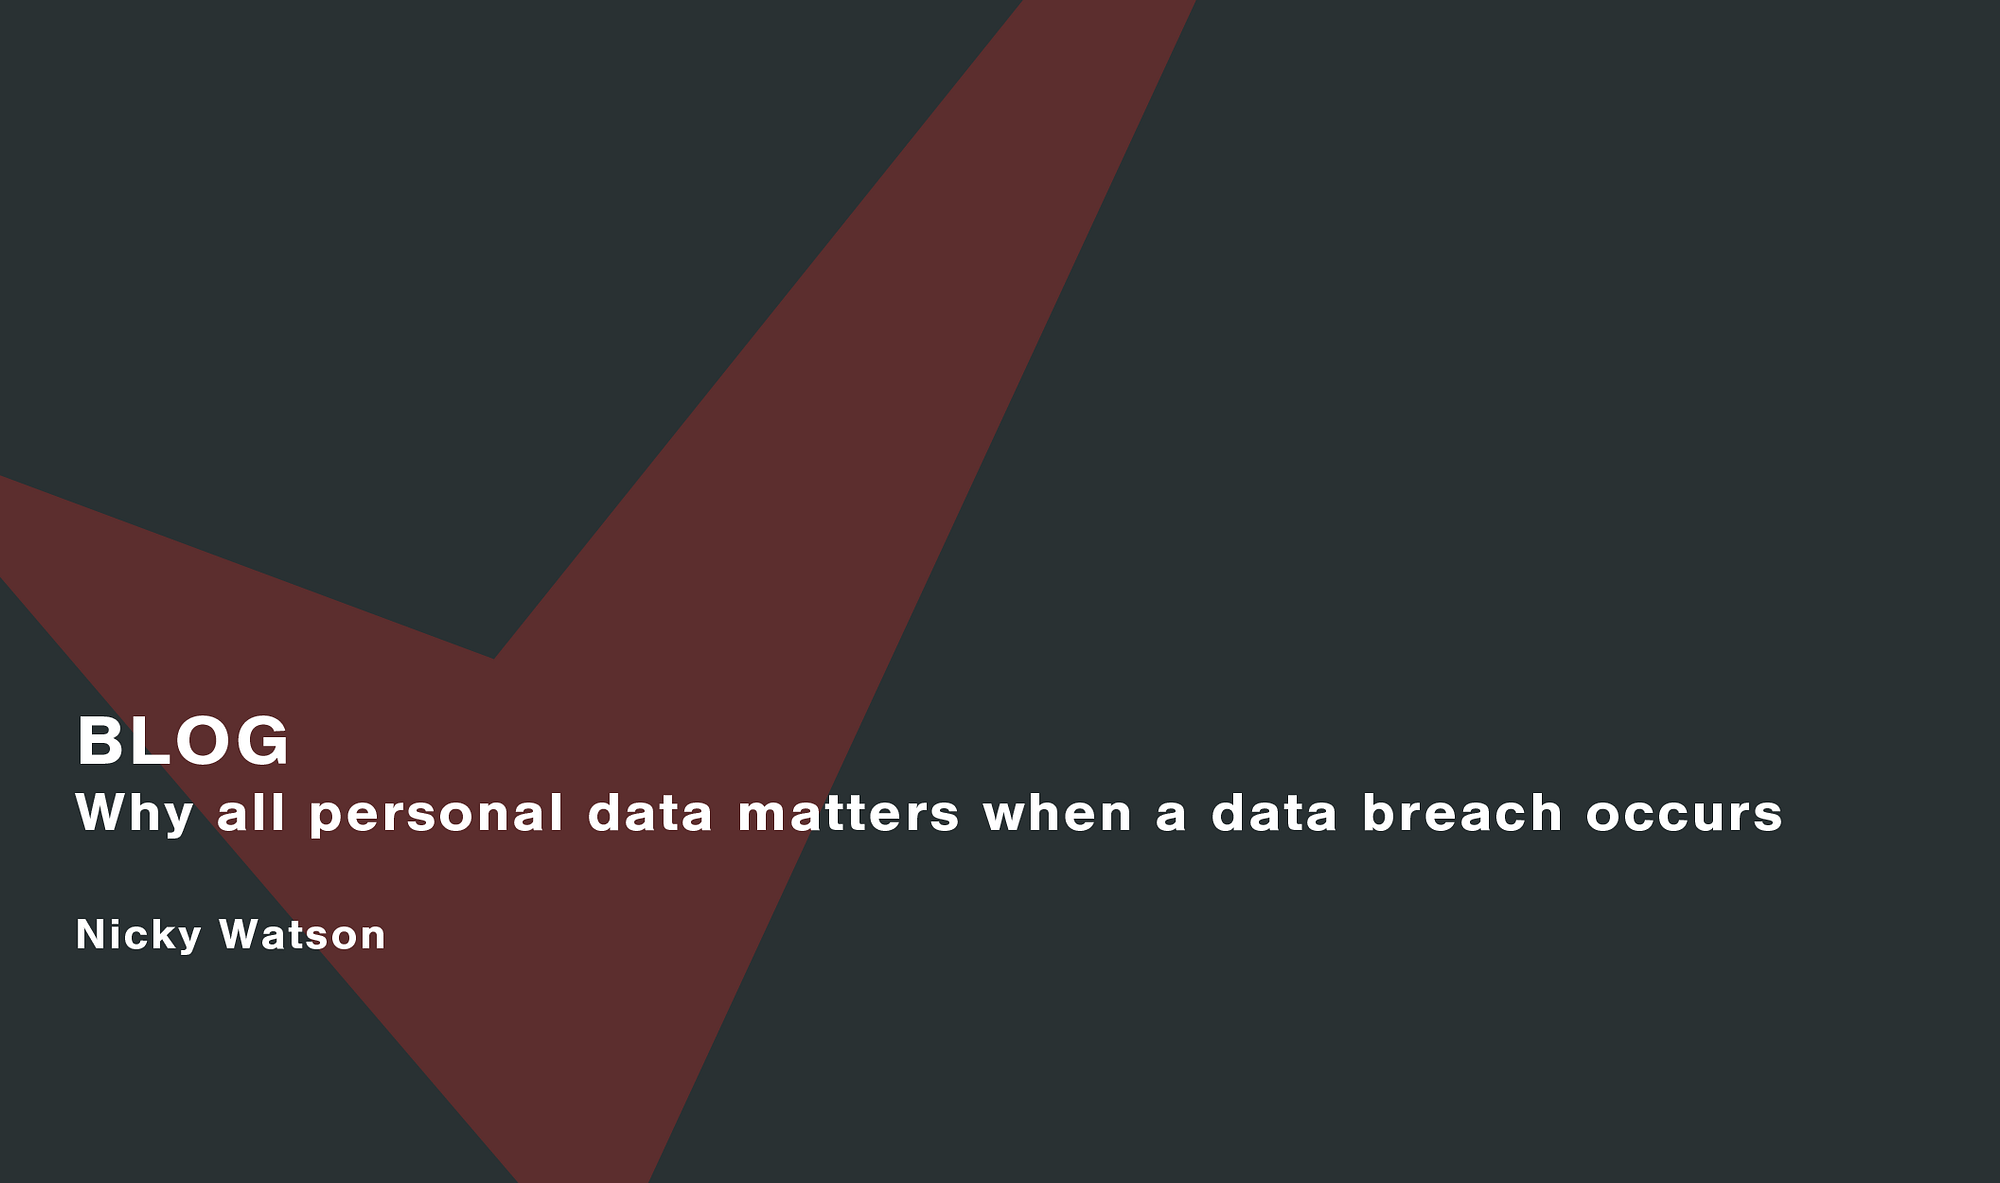 Why-all-personal-data-matters-when-a-data-breach-occurs